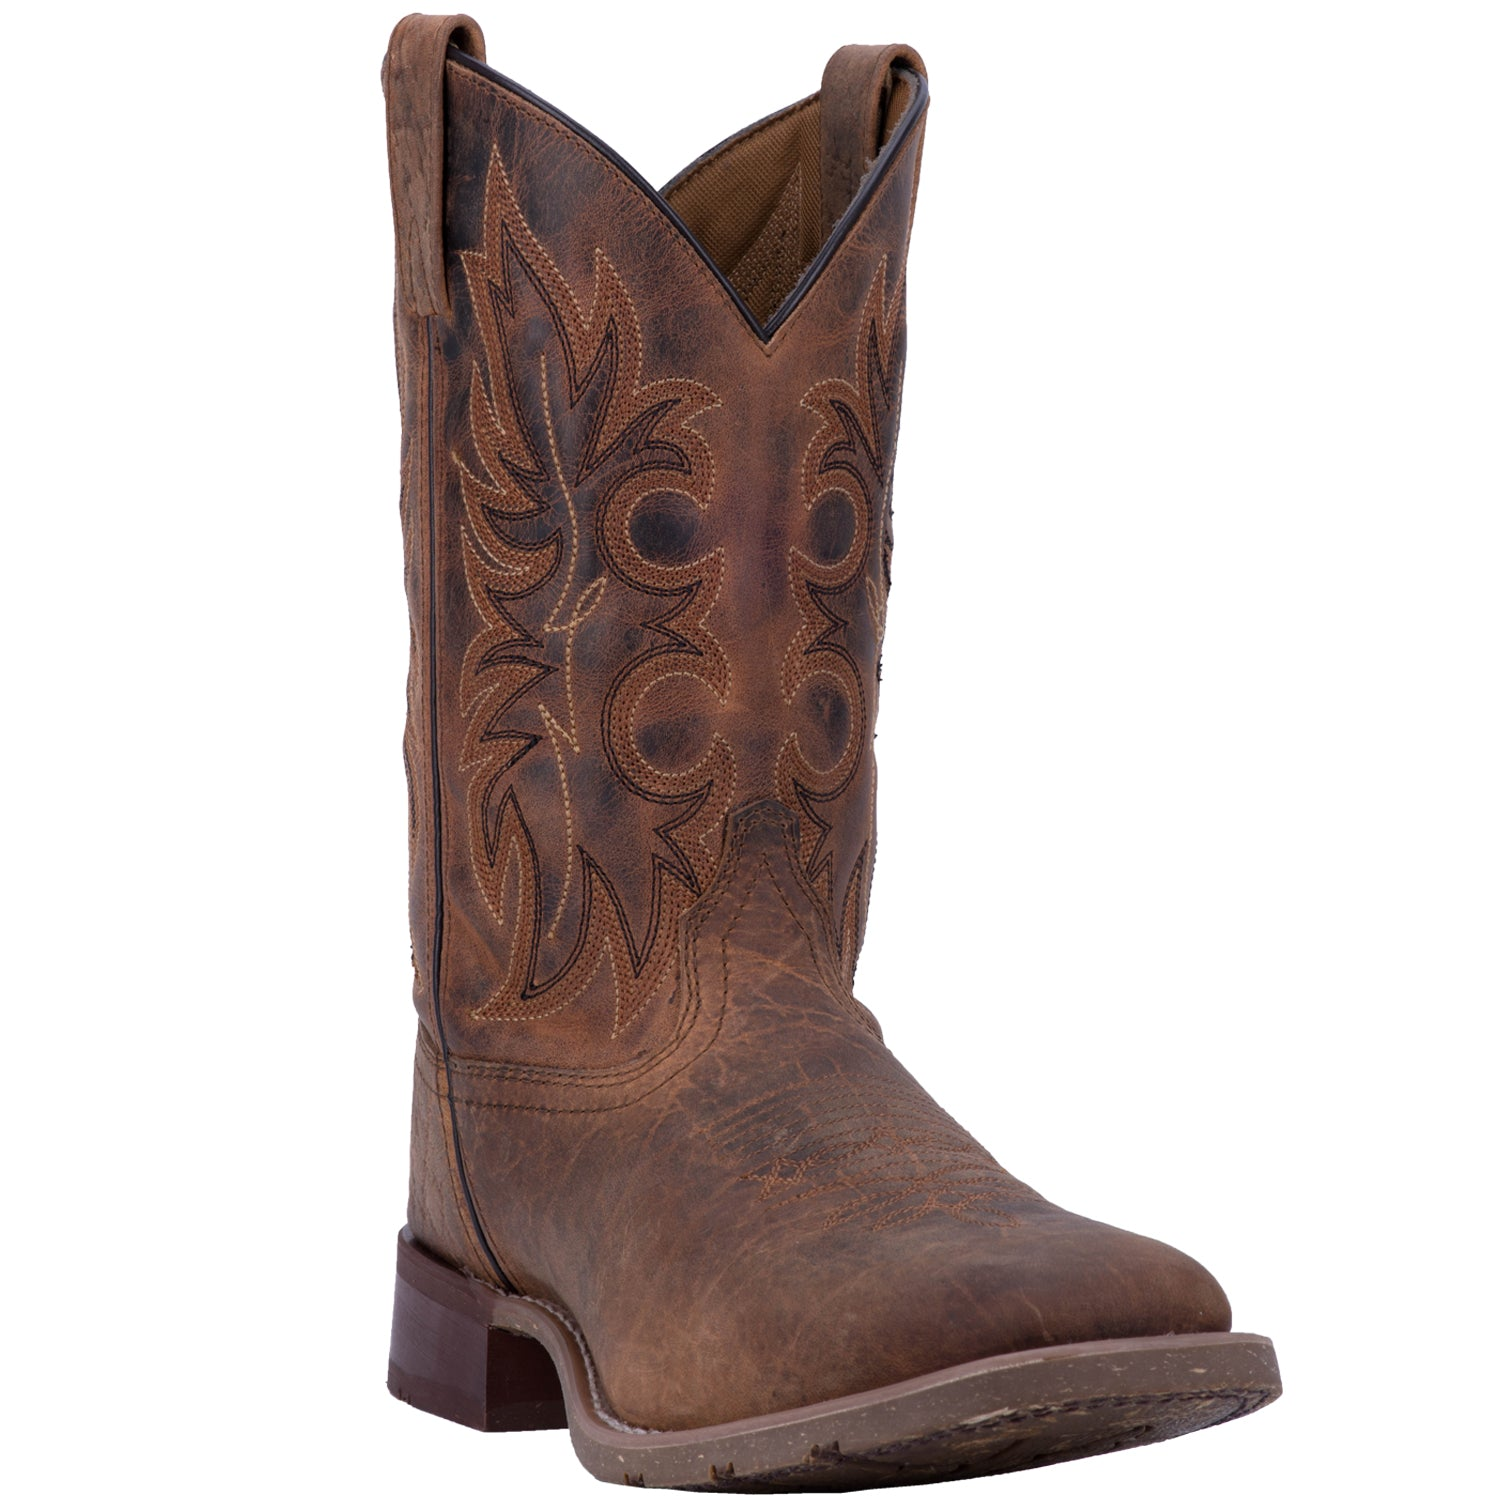 DURANT LEATHER BOOT 4252386721834